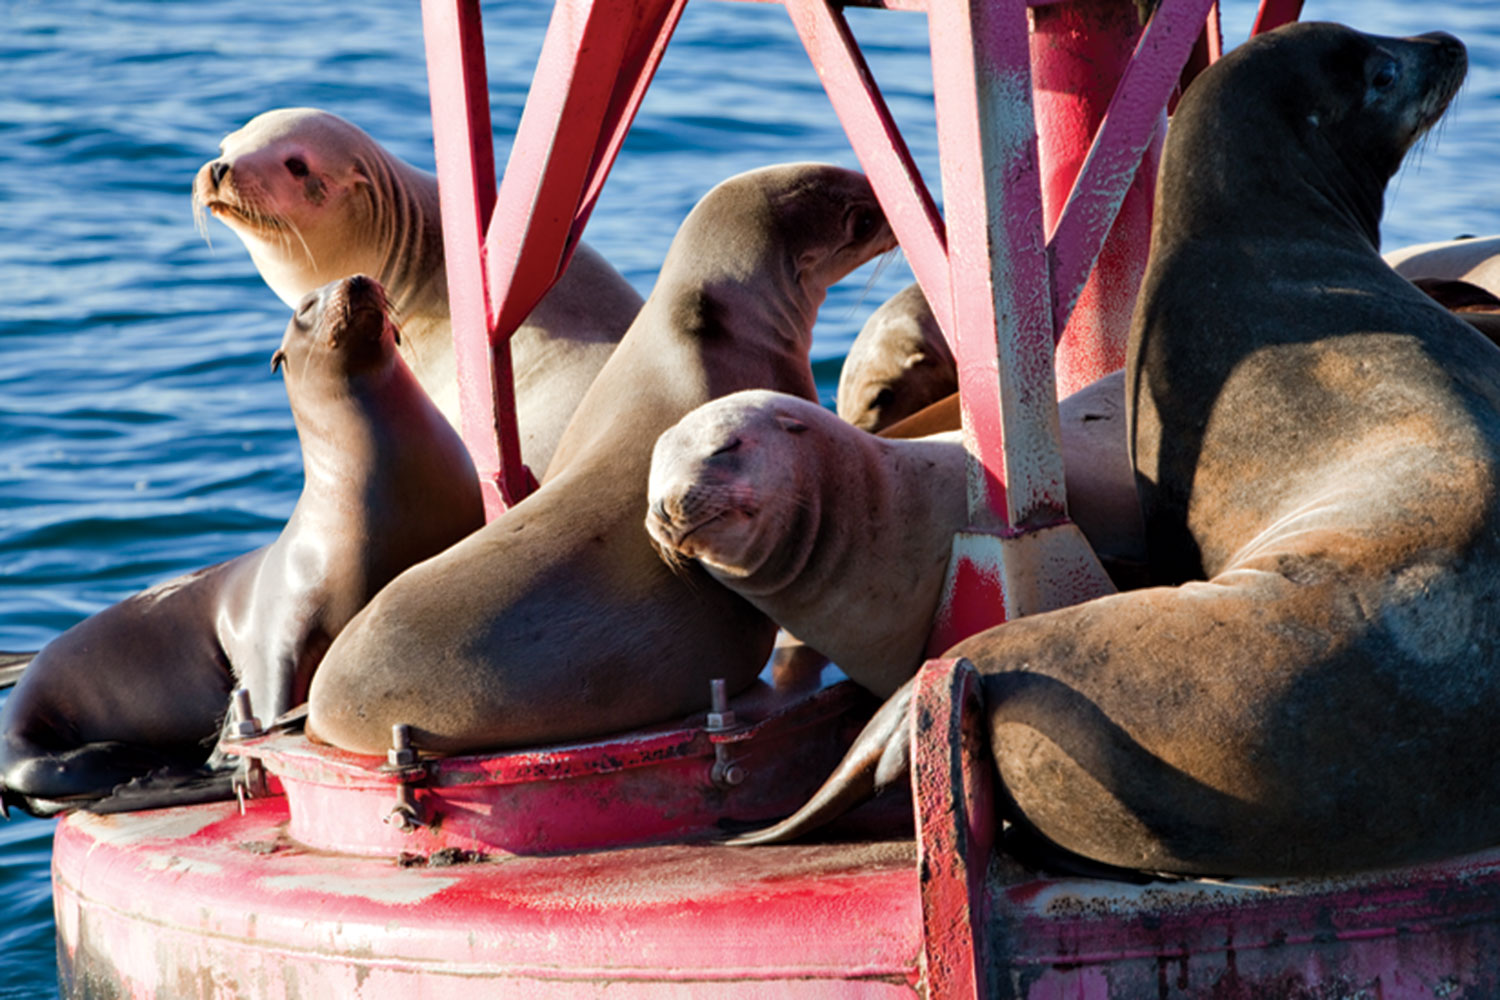 Photos courtesy Visit Ventura; Leah LeMoine; sea lions in Ventura Harbor